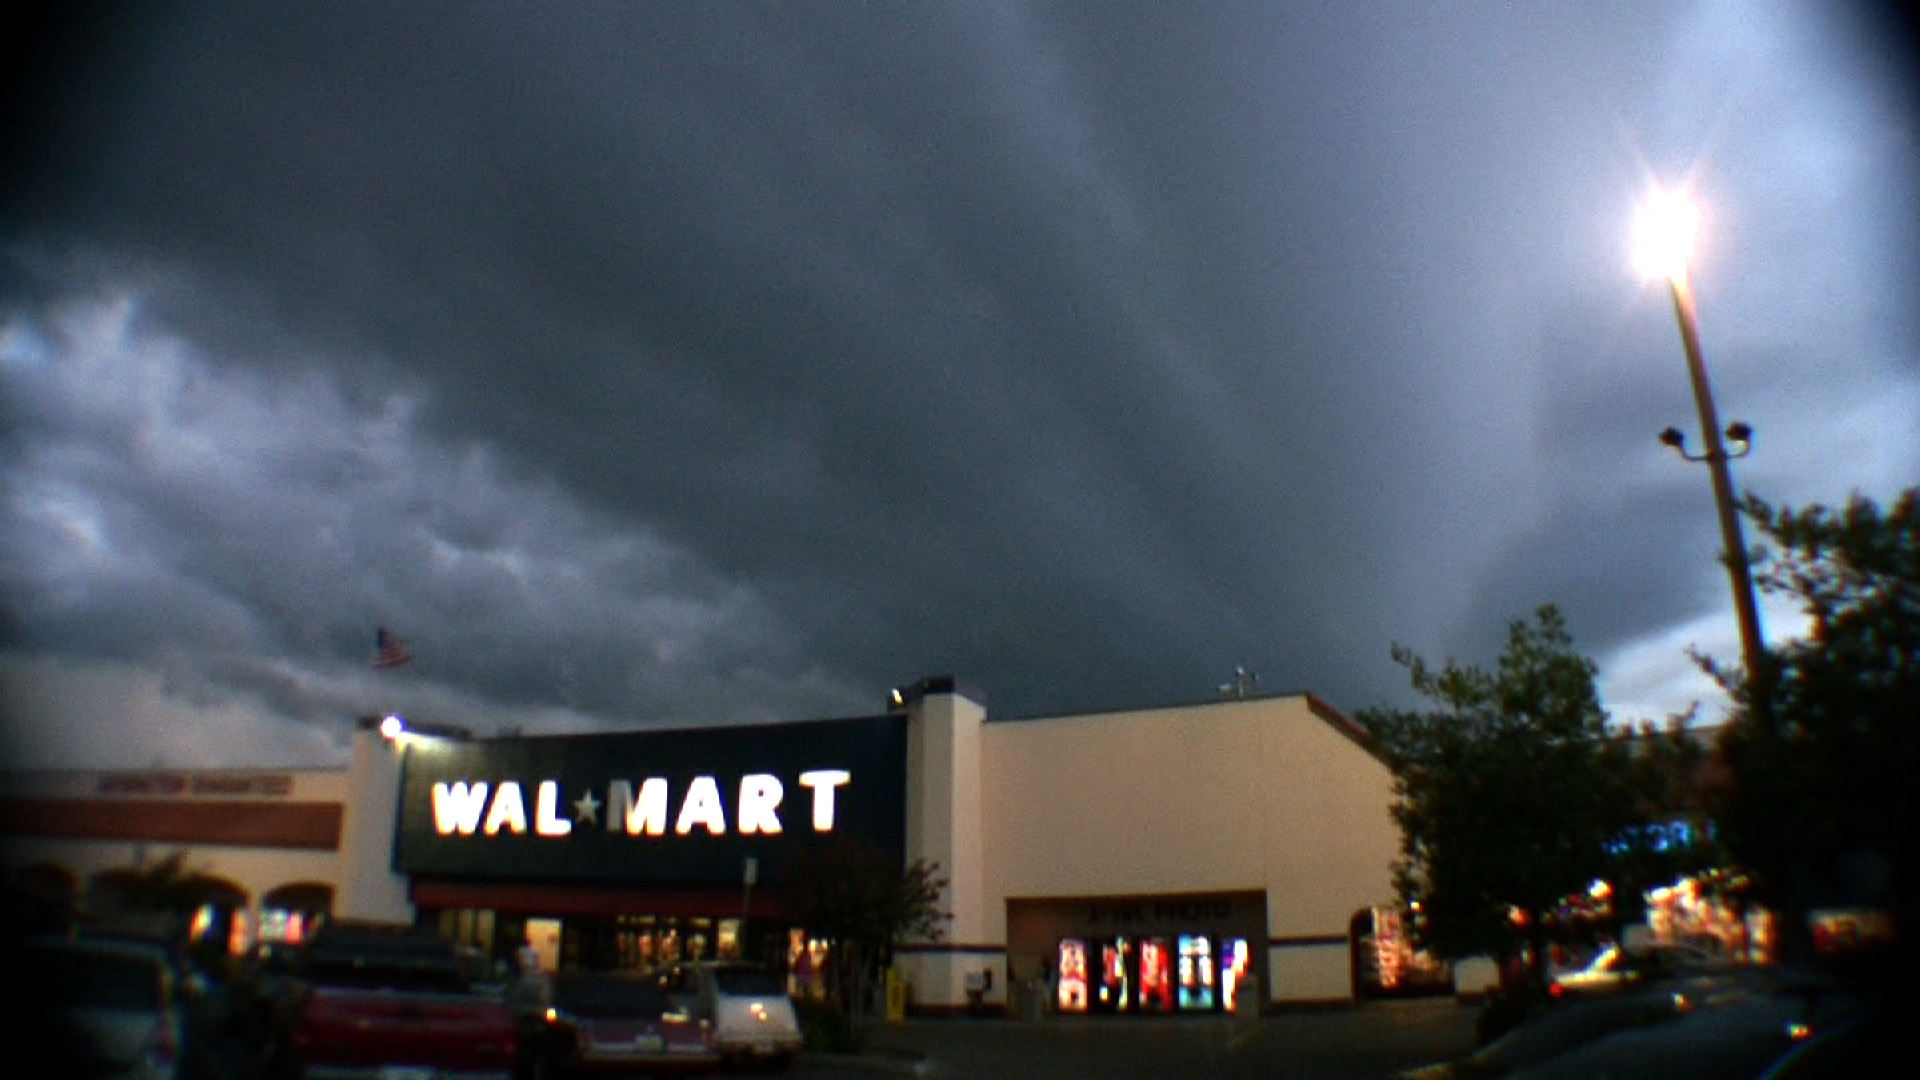 walmart multicellular thunderstorm gust front 7062008